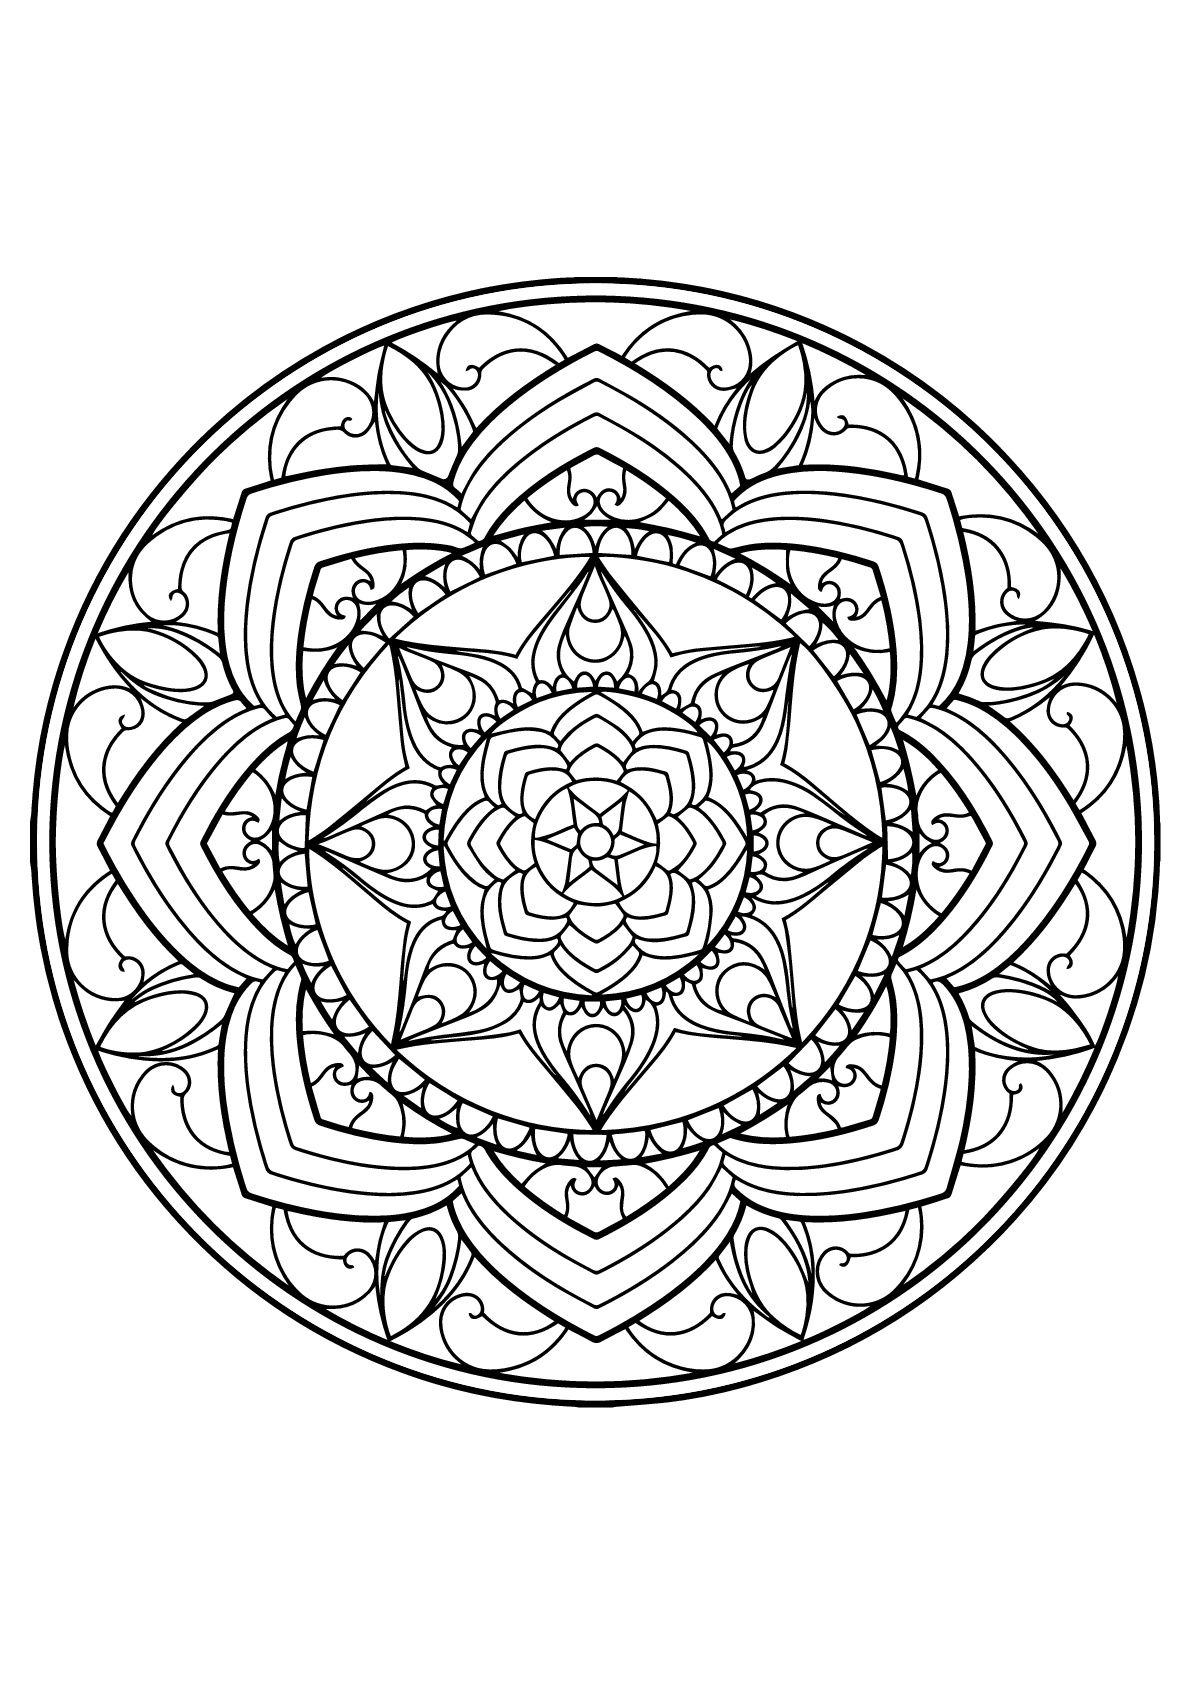 free printable mandalas for adults mandala from free coloring books for adults 14 mandalas free printable mandalas for adults